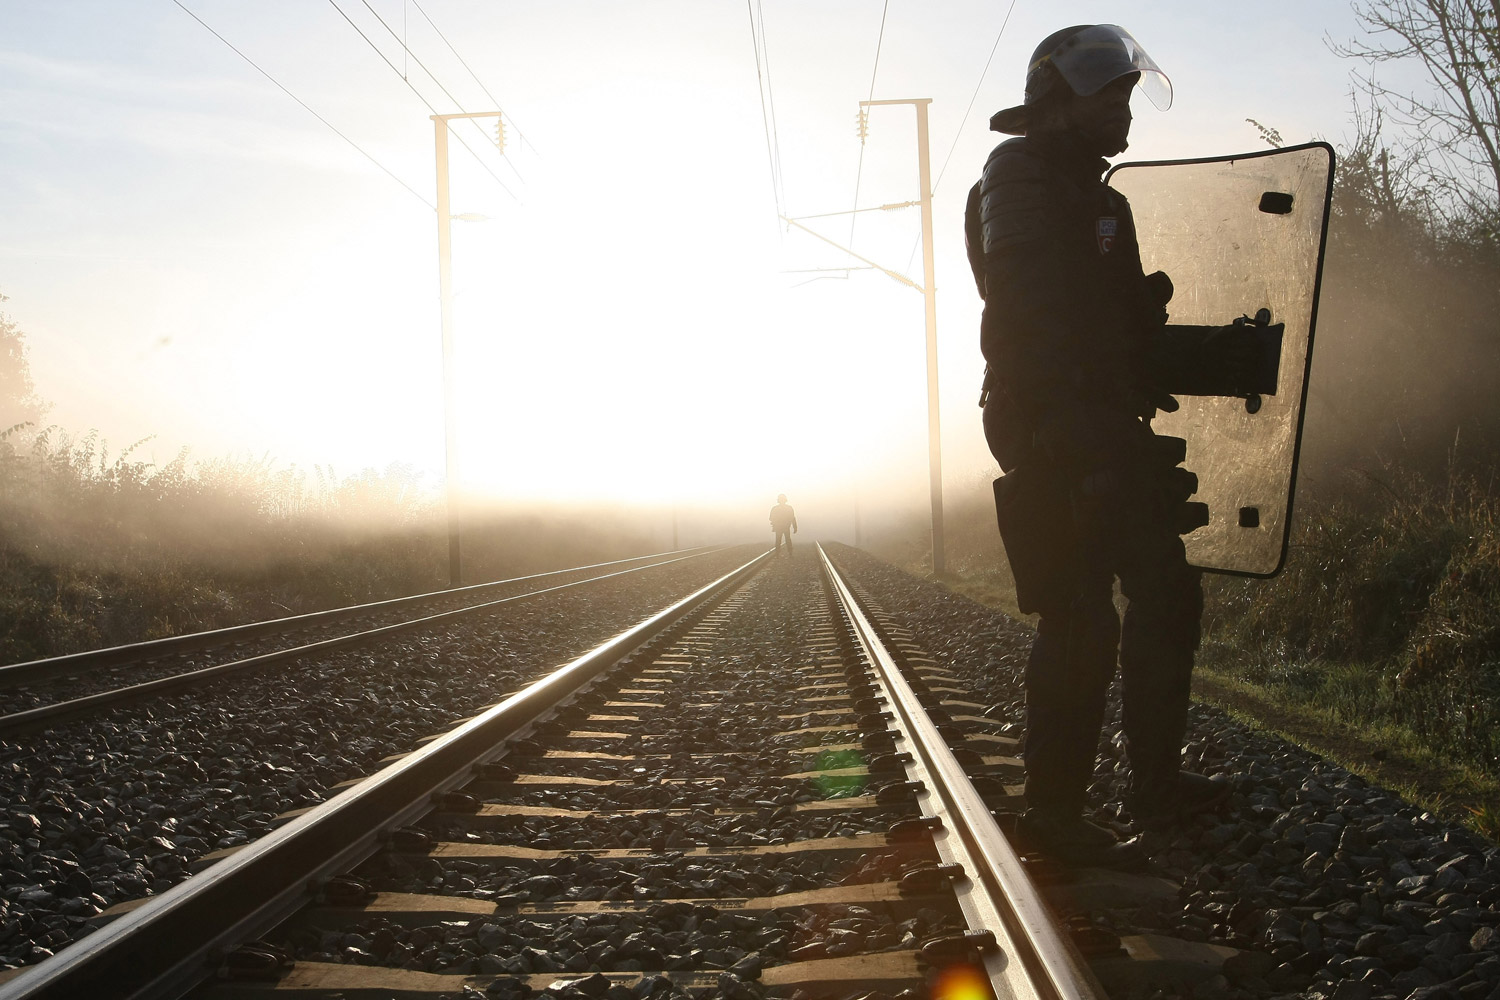 November 23, 2011. Riot police officers secure the railway tracks in Lieusaint, Normandy, France, as environmental activists try to block the train line in an effort to stop a train loaded with nuclear waste and heading to Gorleben in Germany.